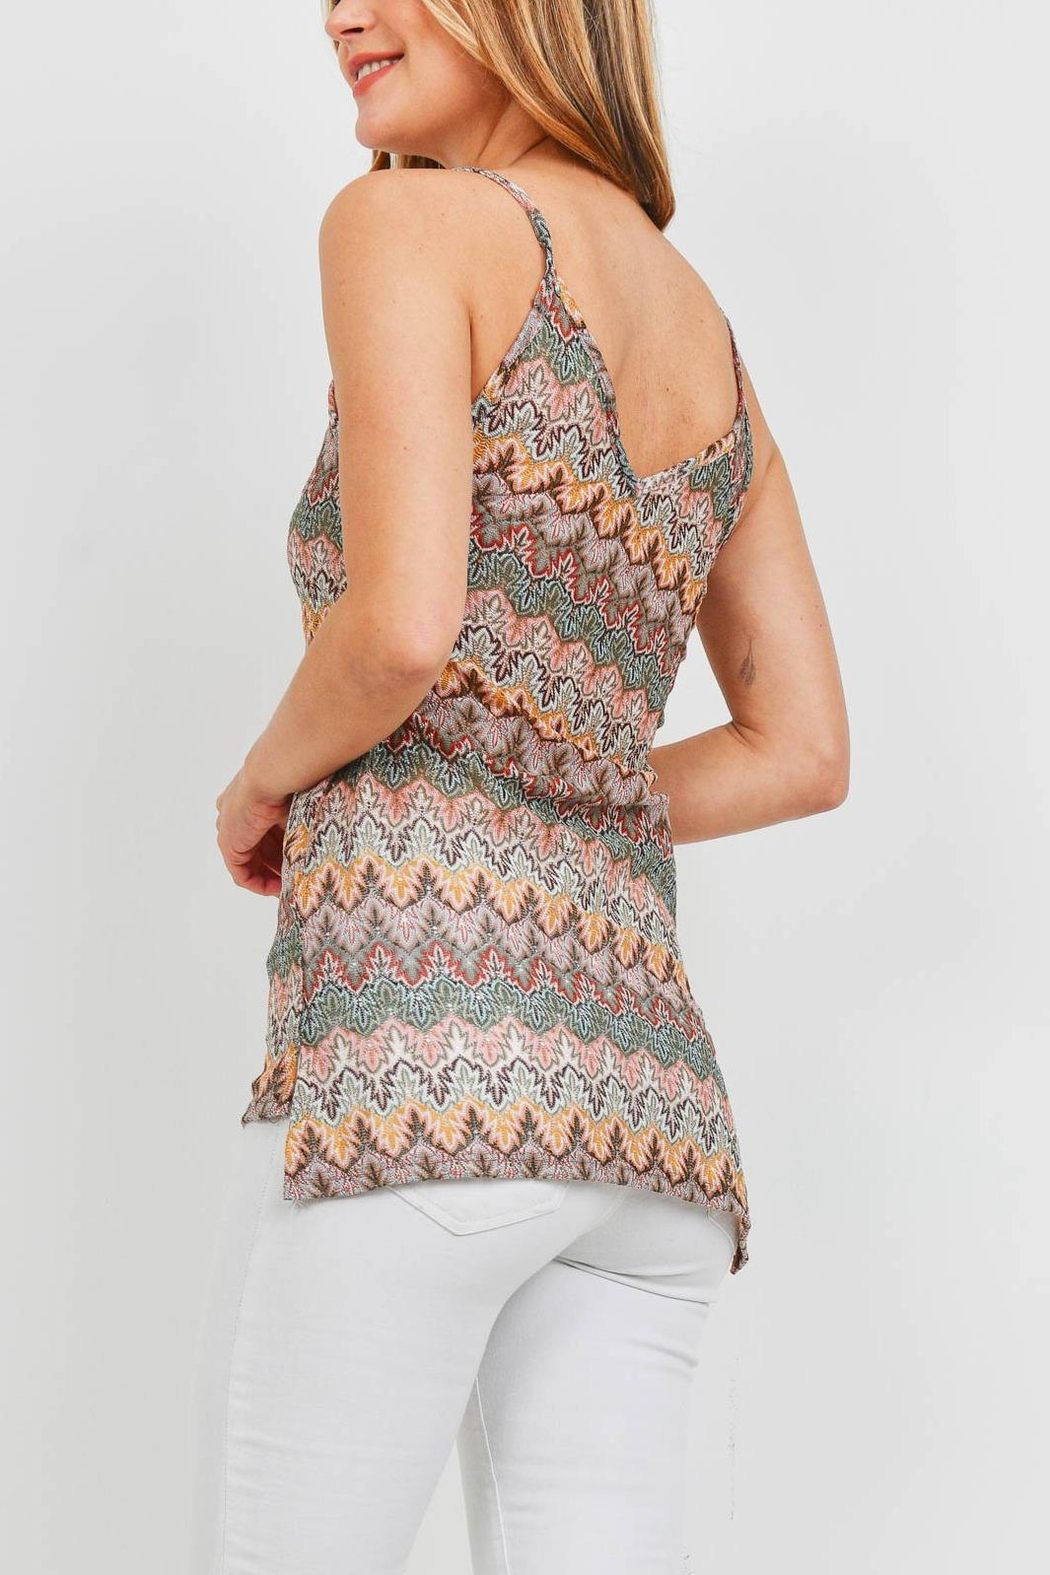 Riah Fashion Multi Color Top - Front Full Image